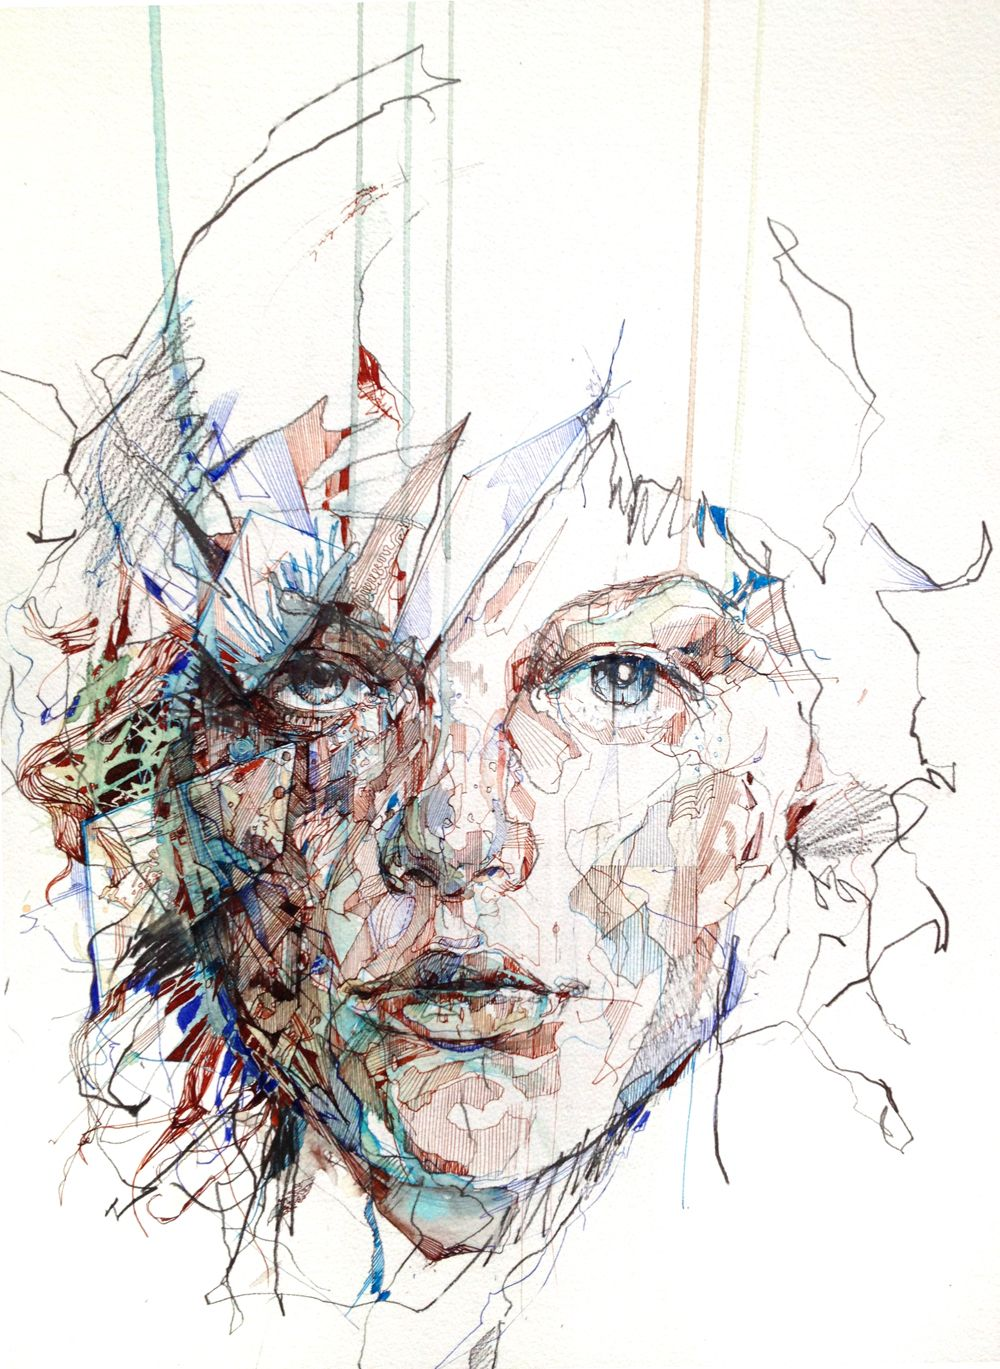 London uk artist carne griffiths calligraphy ink whisky and graphite